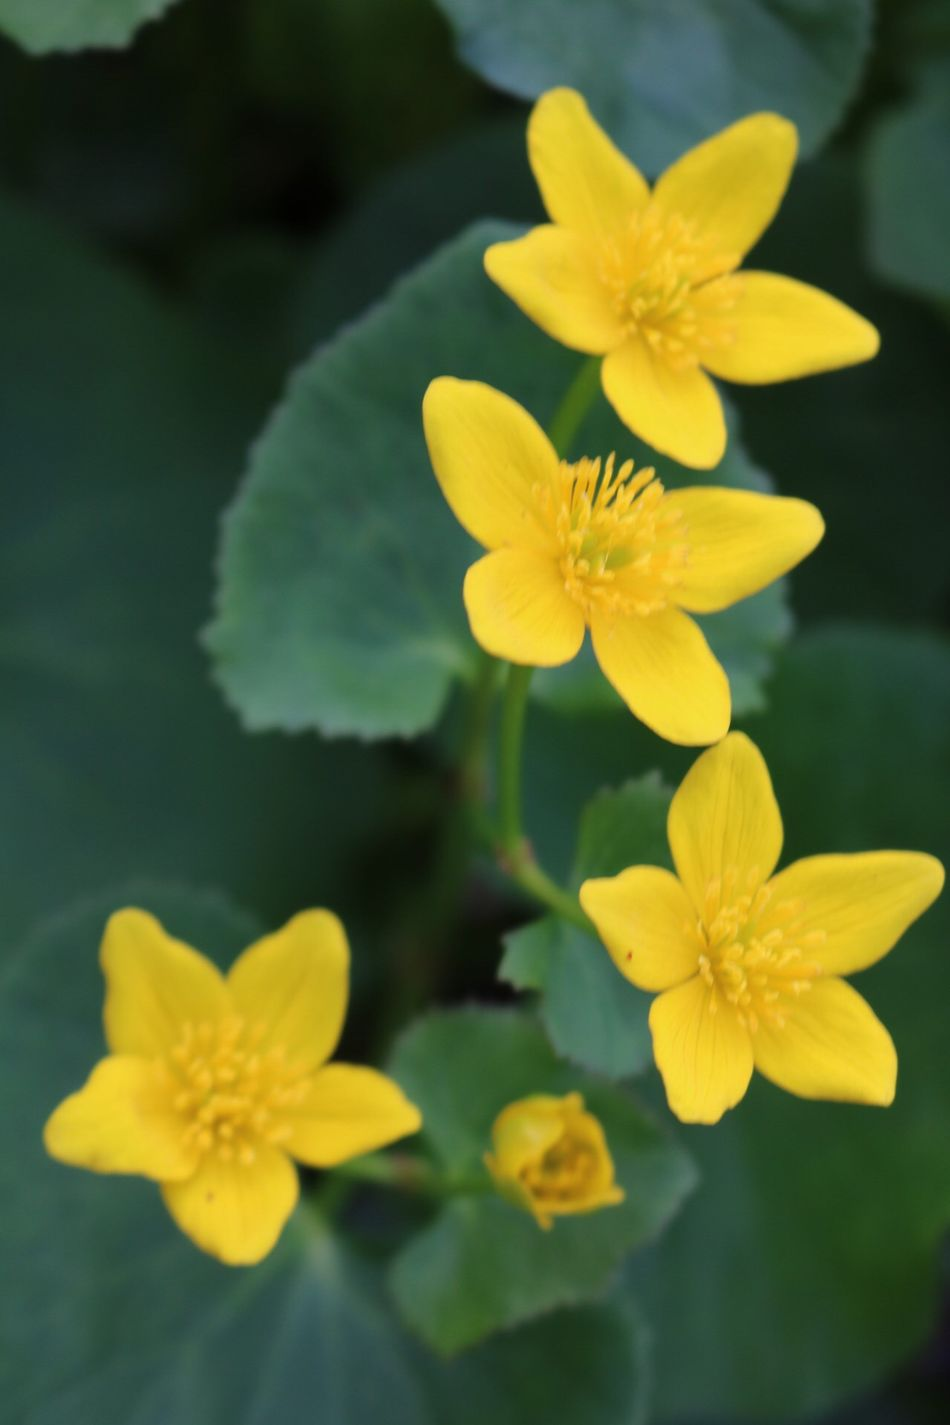 Marsh Marigold Pure Michigan Flower Petal Yellow Fragility Flower Head Beauty In Nature Growth Nature Freshness Plant Blooming Close-up No People Day Outdoors Walk In The Woods Beauty In Nature Growth Plant